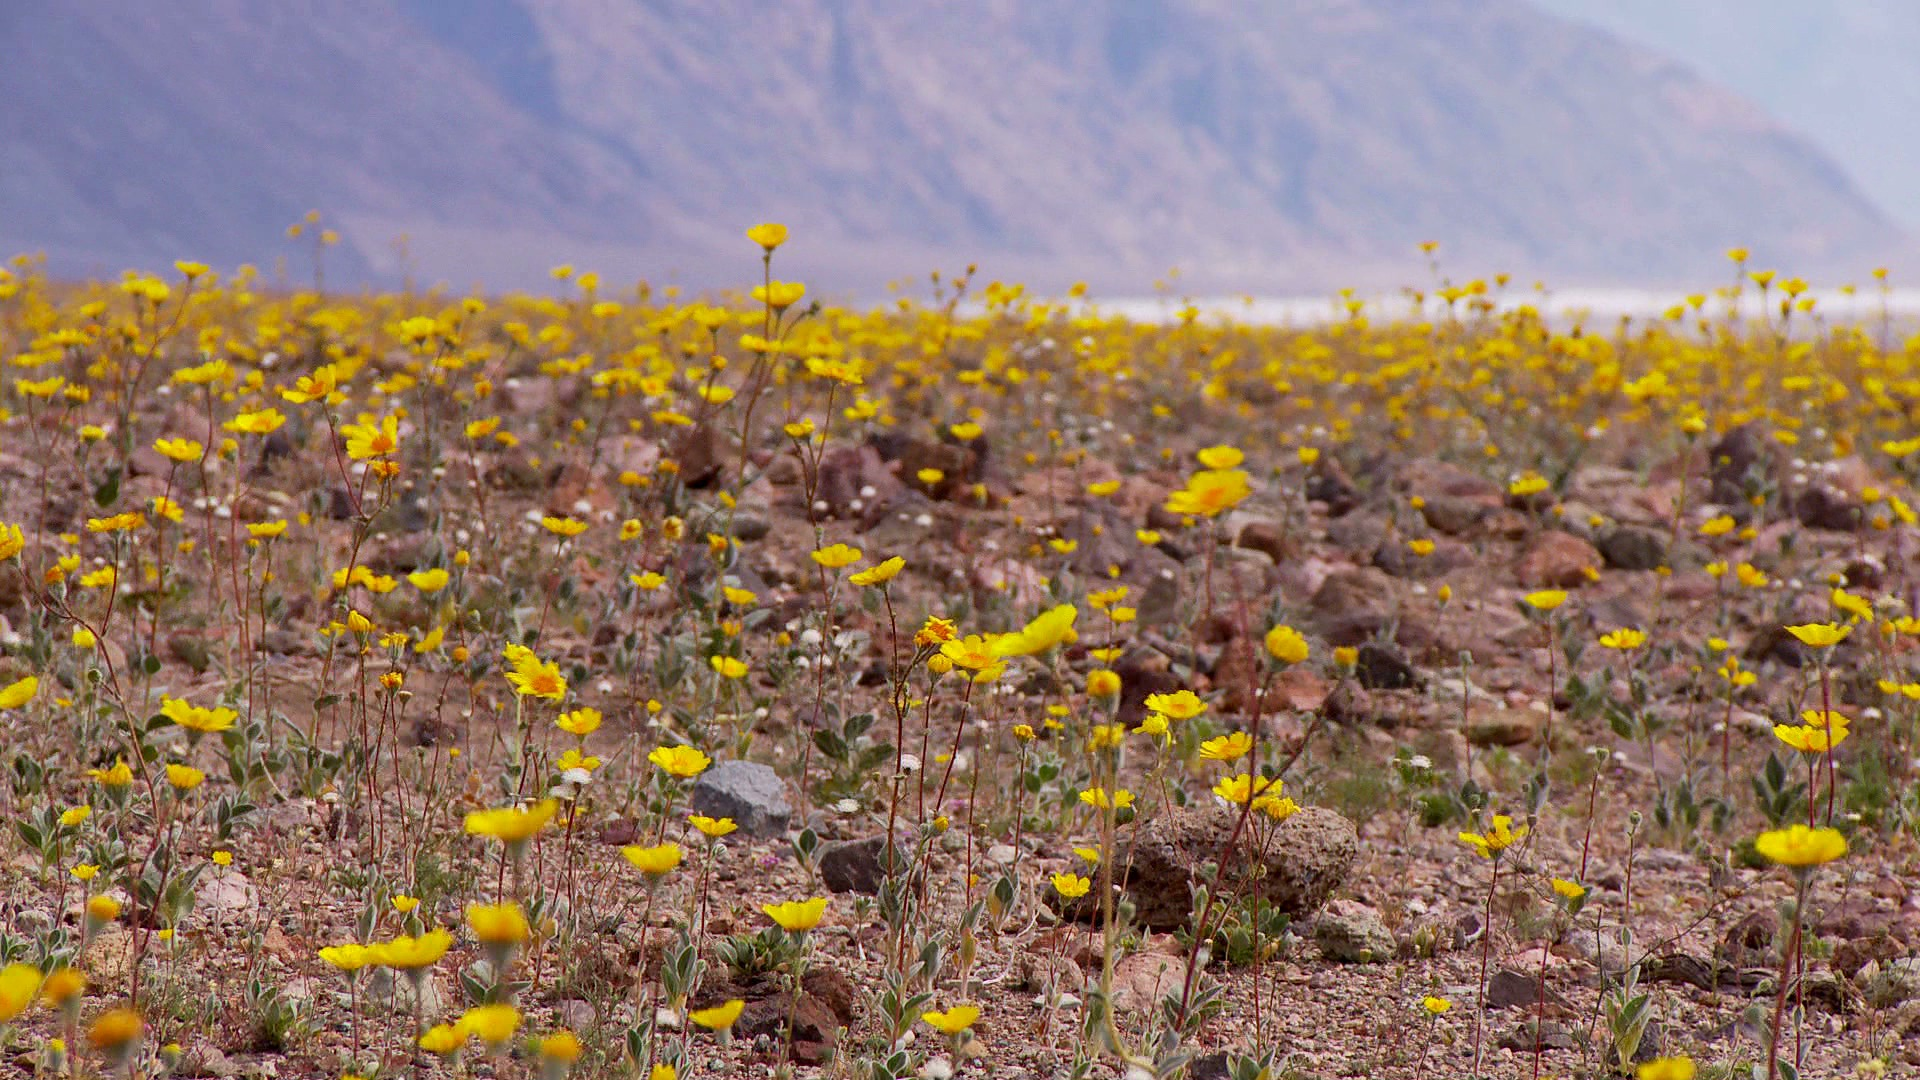 Yellow Desert Flowers Unlimited Free Stock Photos Royalty Free